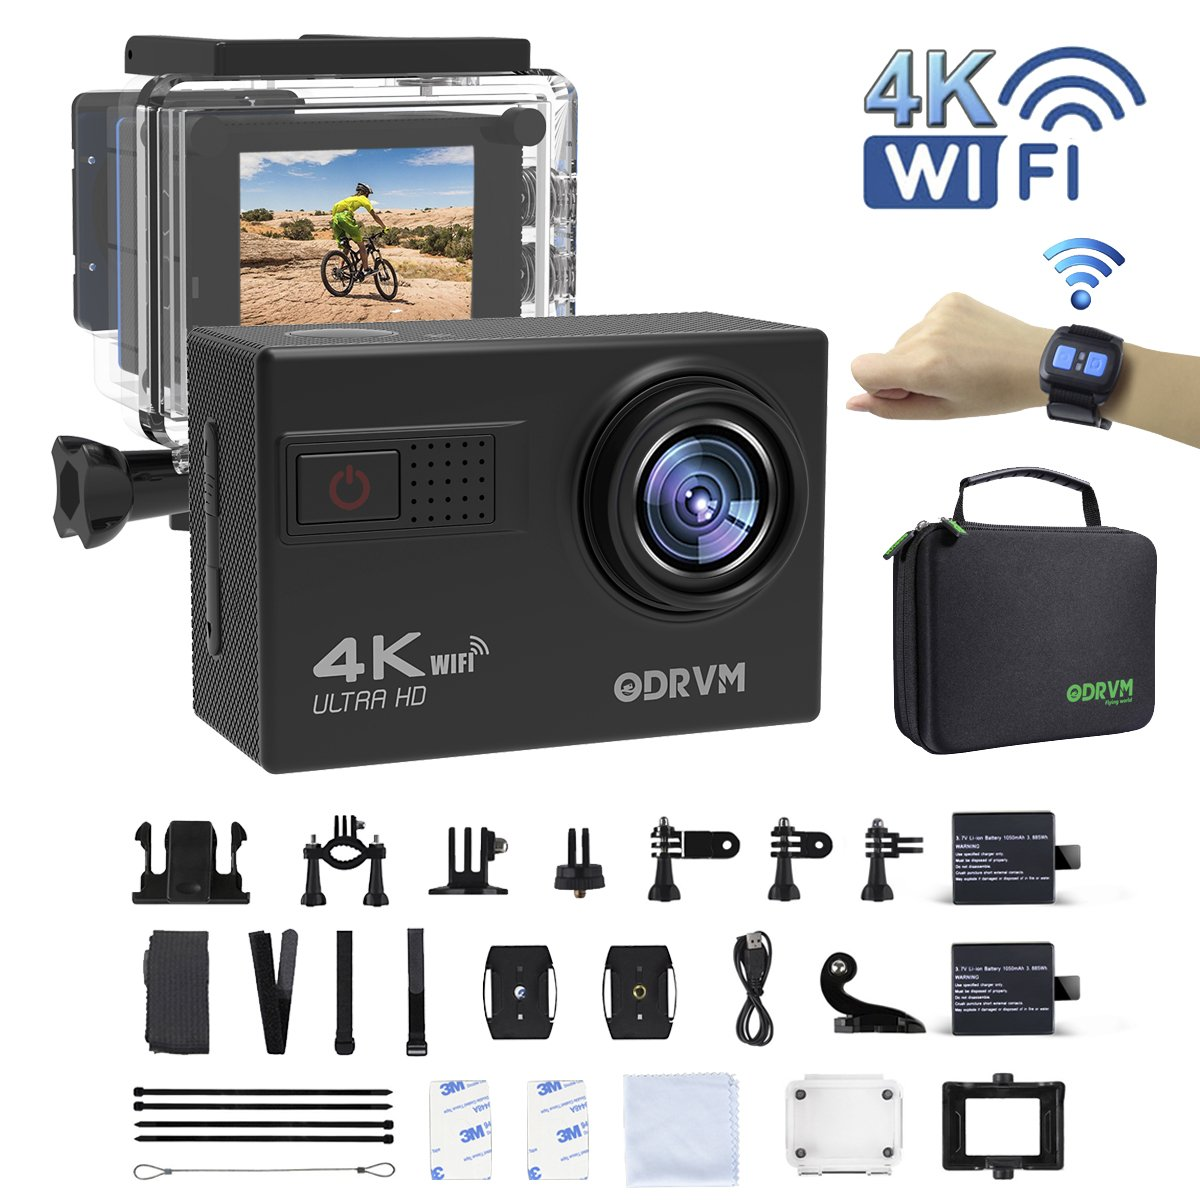 4k Action Camera WiFi with 2.4G Remote Control Underwater Camera Digital Waterproof Sports Camera 1080P/60fps and 70-170 Wide Angle Lens for Motorcycle, Kids,Drone,Helmets,Diving and Water Sports